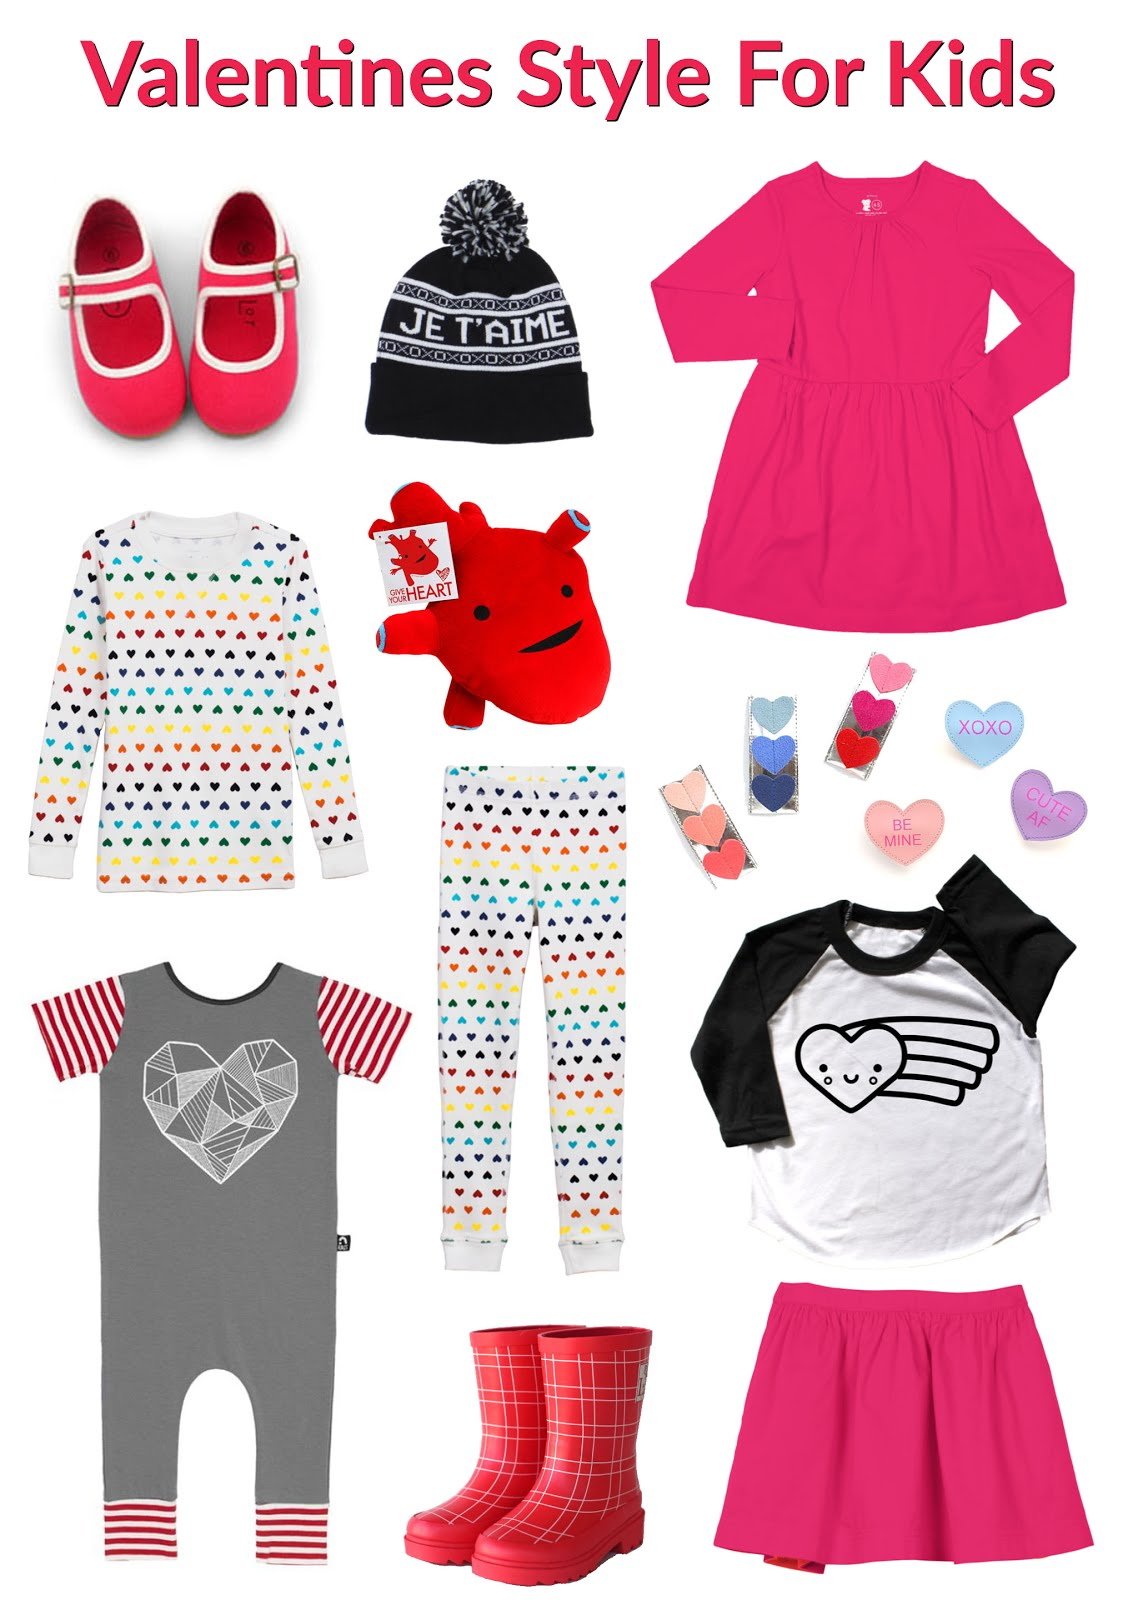 Valentine's Style for Kids